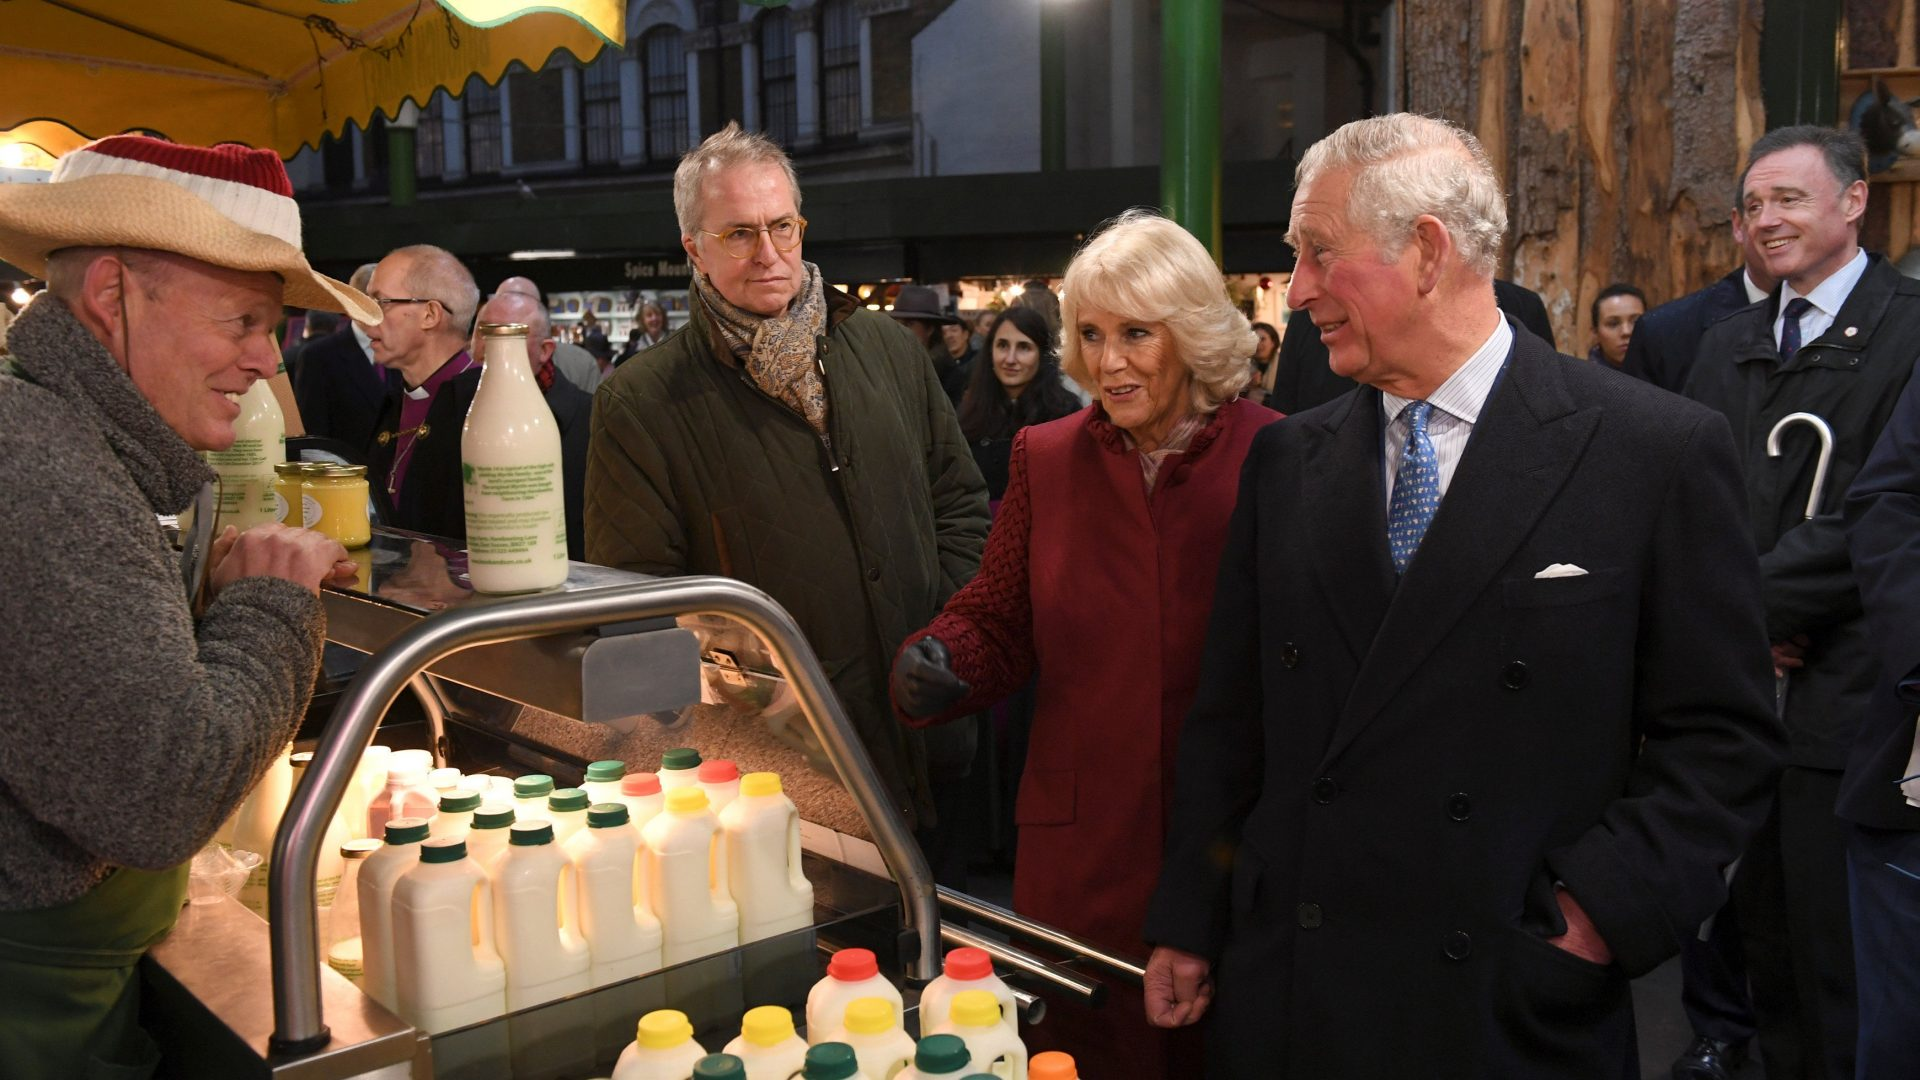 Charles and Camilla meet stall-holders and members of the local community in Borough Market